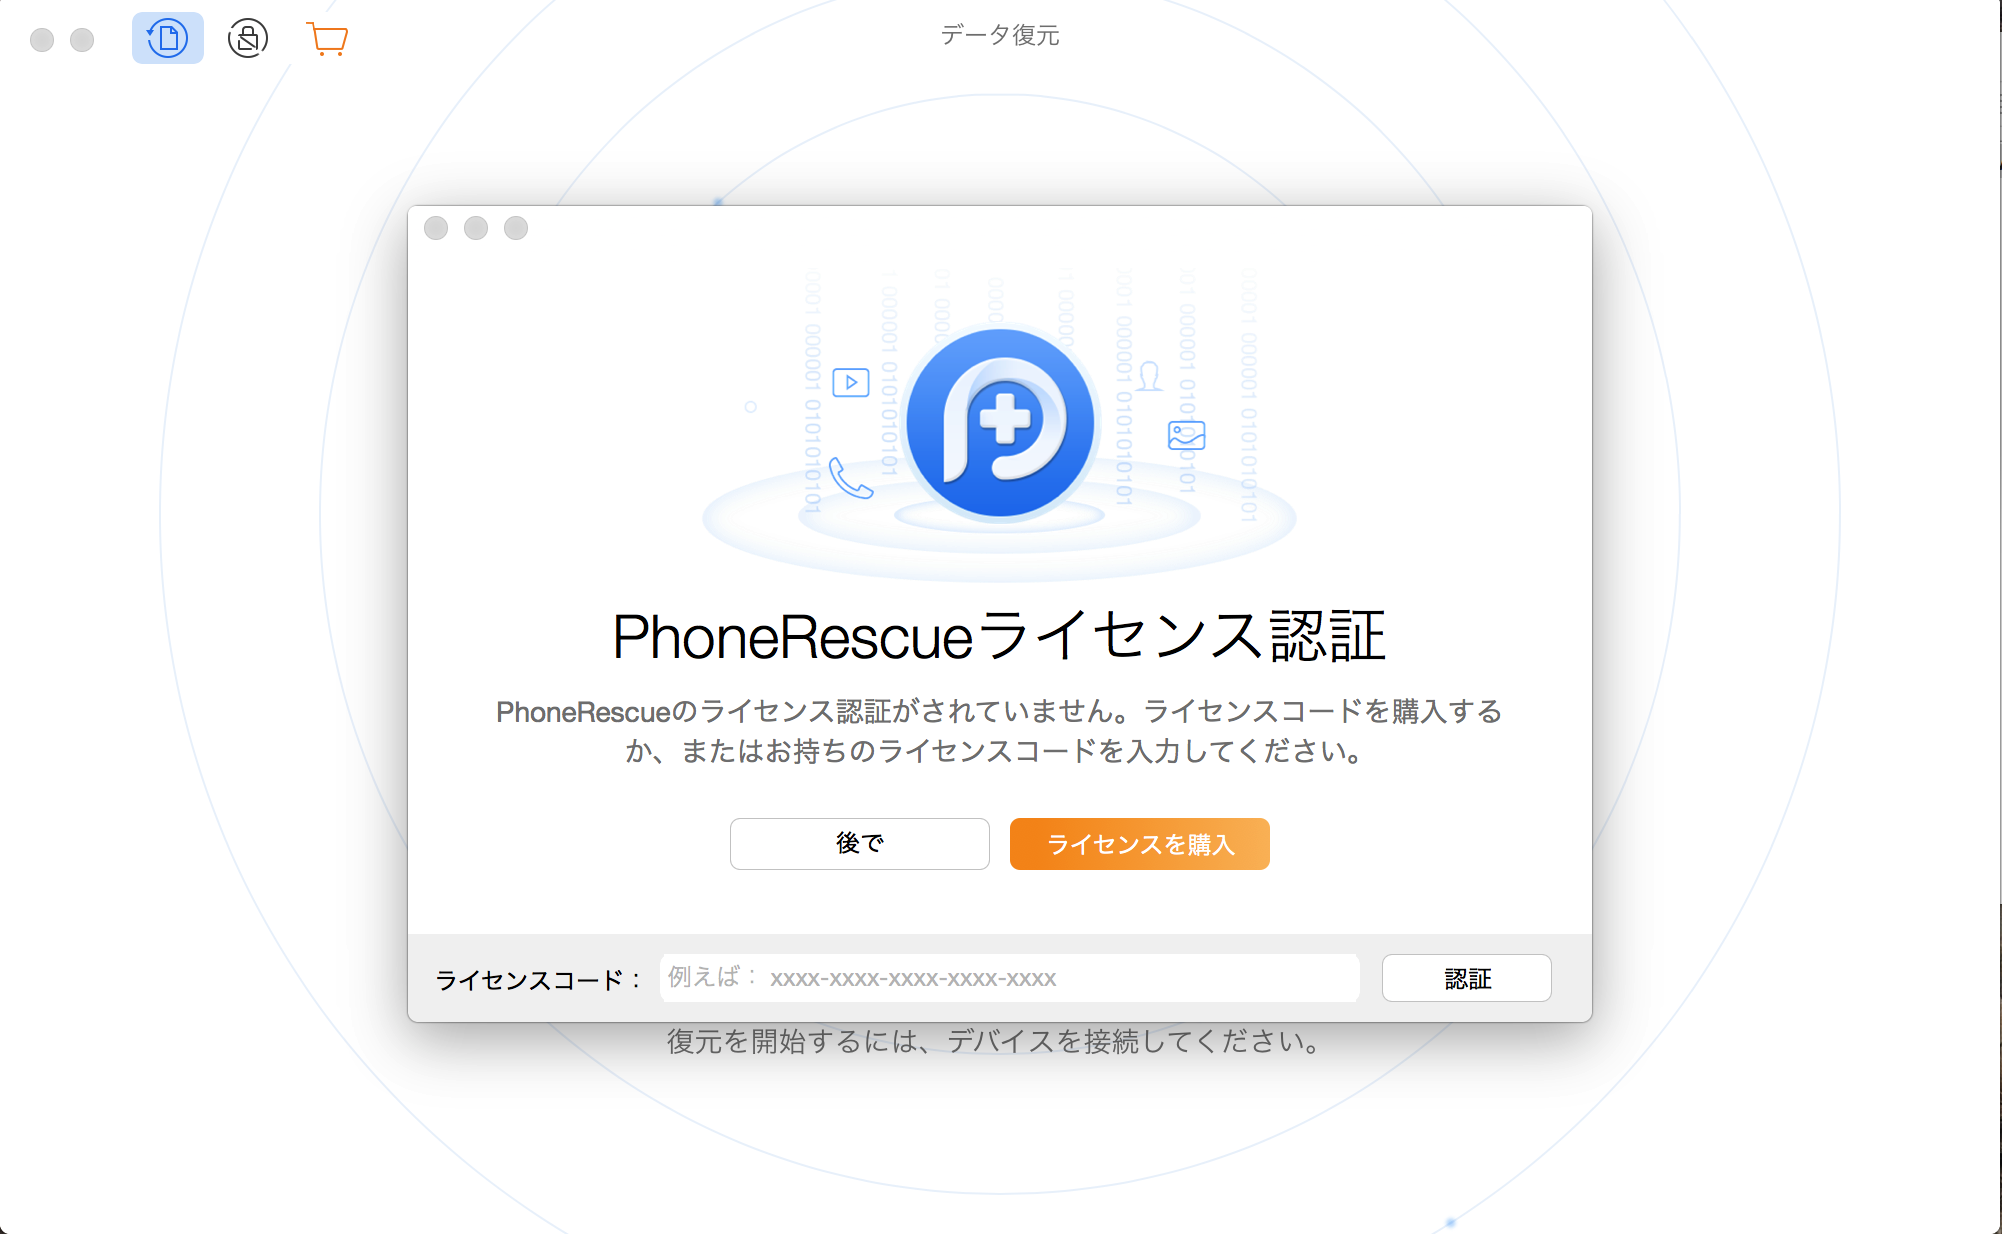 PhoneRescue for HTCの登録